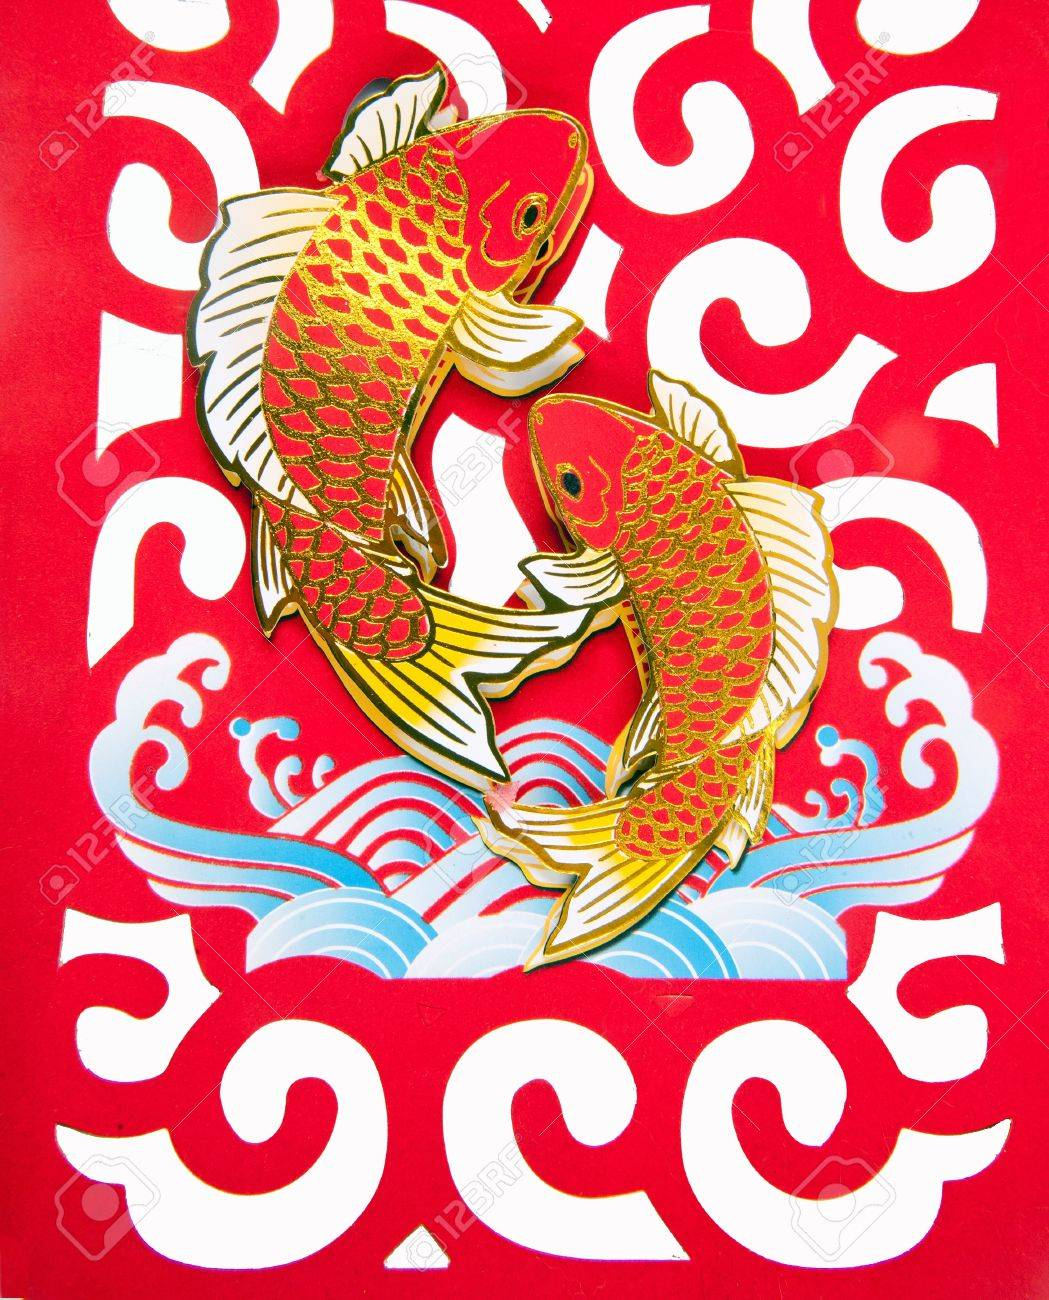 fish jump on clouds of lunar year decoration Stock Photo - 12070715